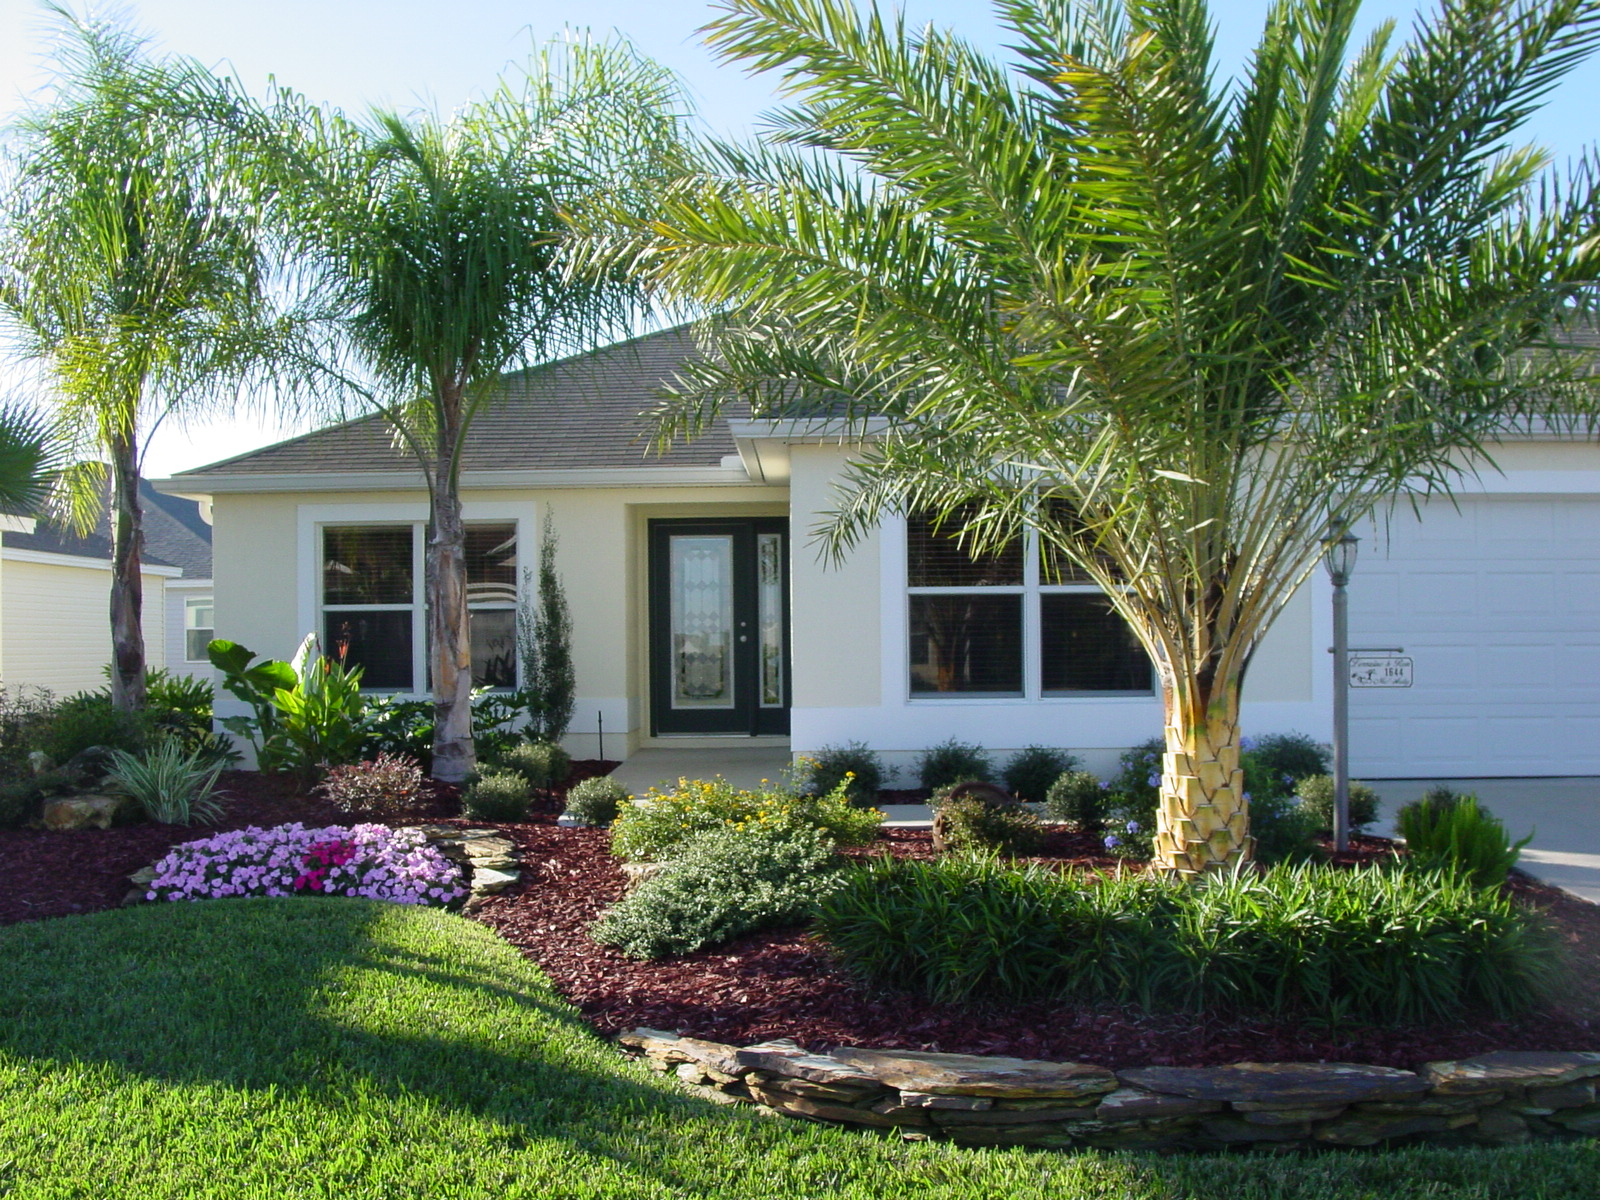 Florida garden landscape ideas photograph rons landscaping Garden home communities